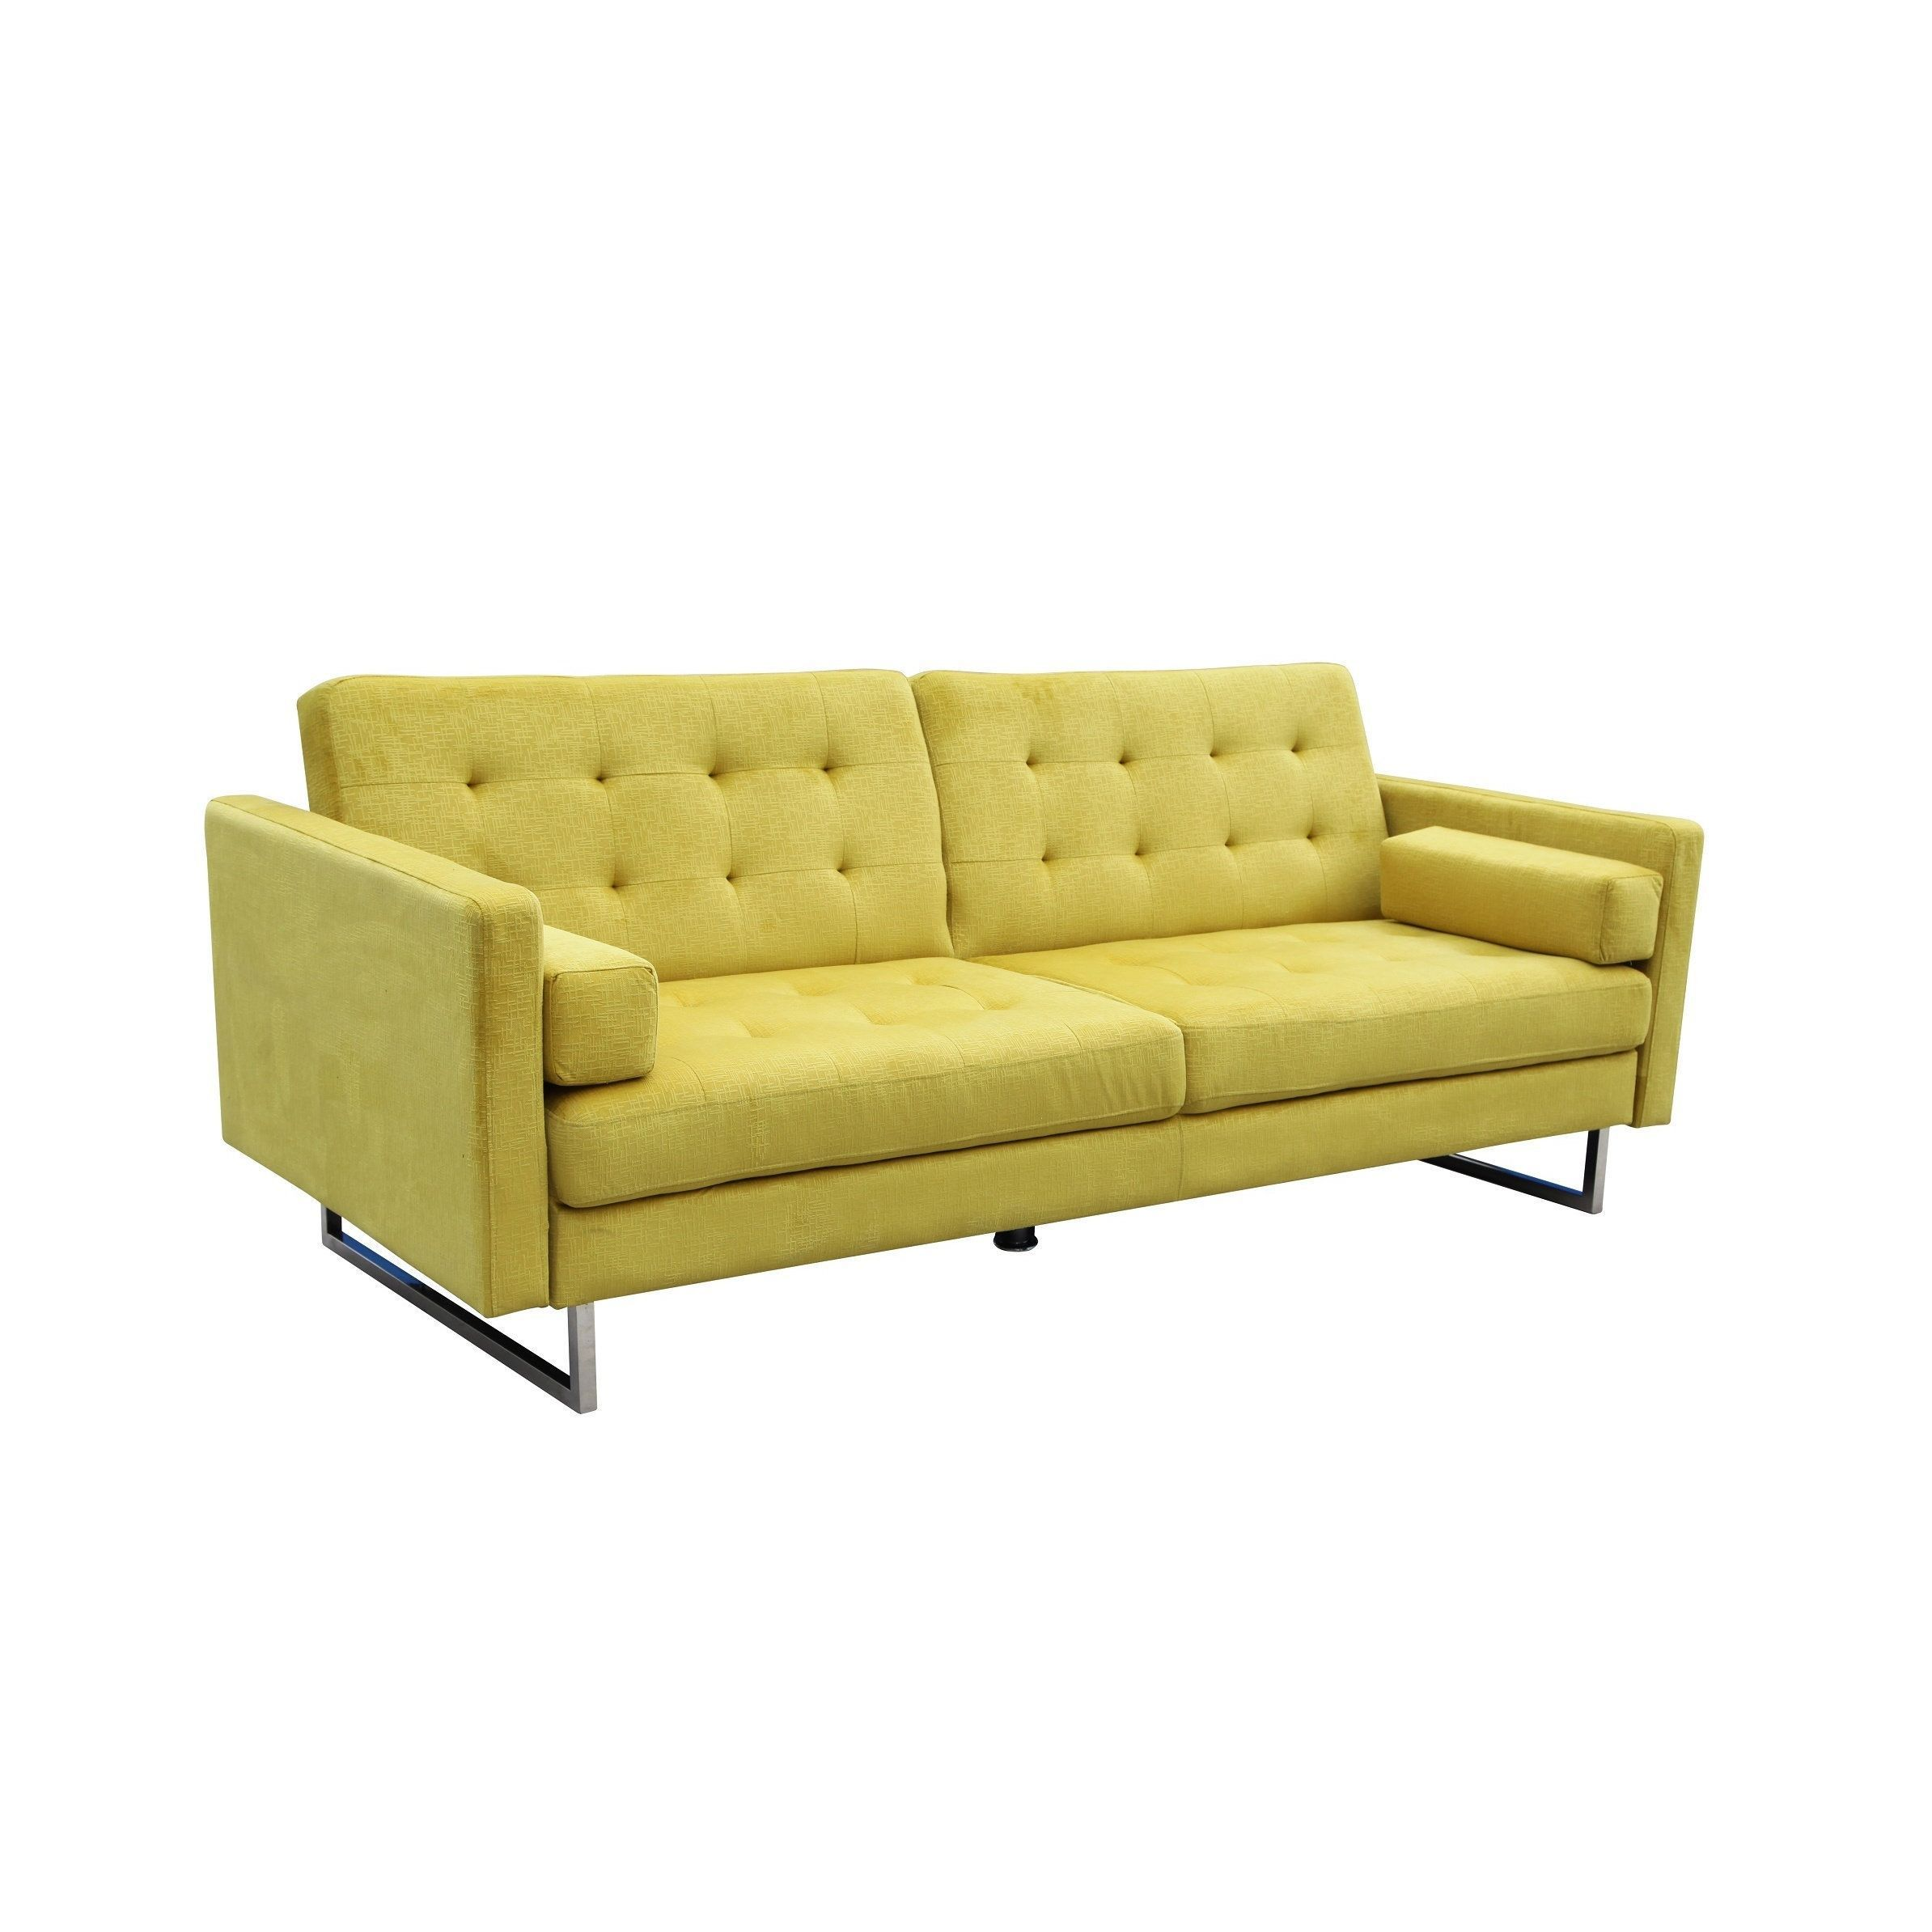 Fabric Microfiber Mid Century Modern Futon Set Sleeper Sofa Futons Add Soft And Versatile Seating To Your Home With Stylish